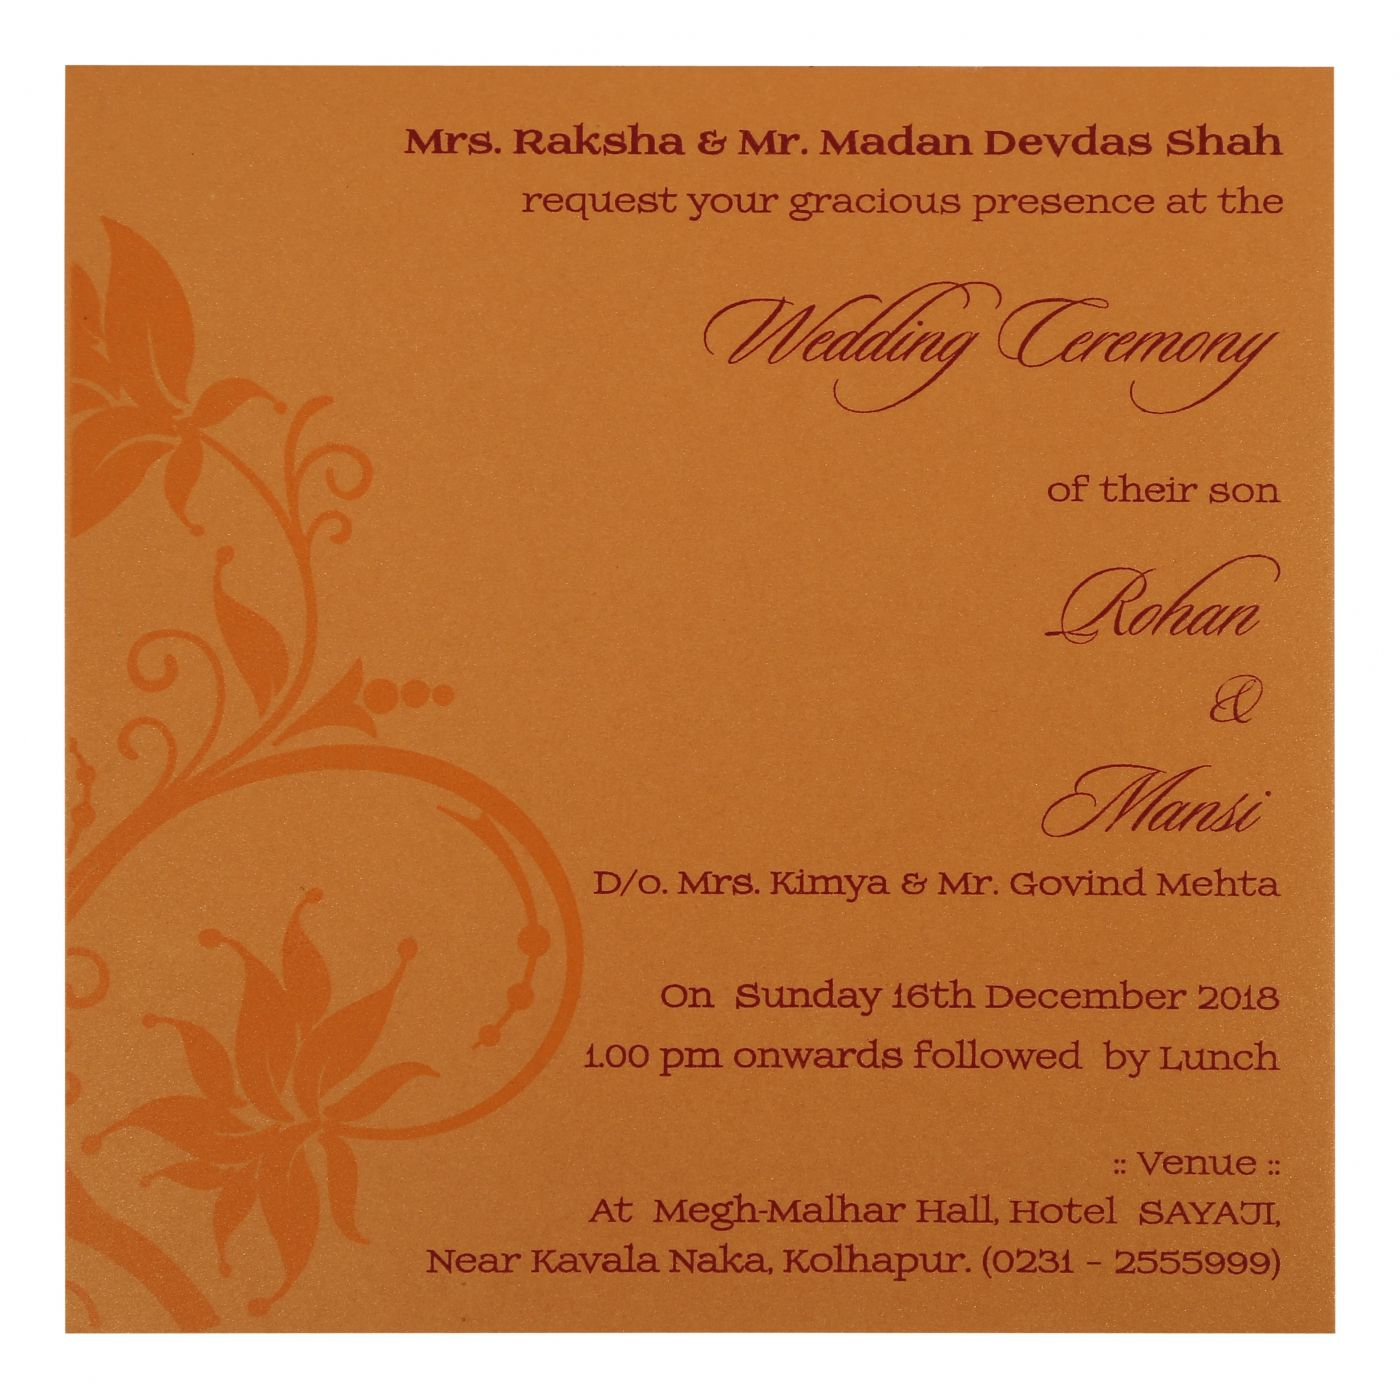 NAVY BLUE SHIMMERY FLORAL THEMED - FOIL STAMPED WEDDING INVITATION : CW-1774 - IndianWeddingCards